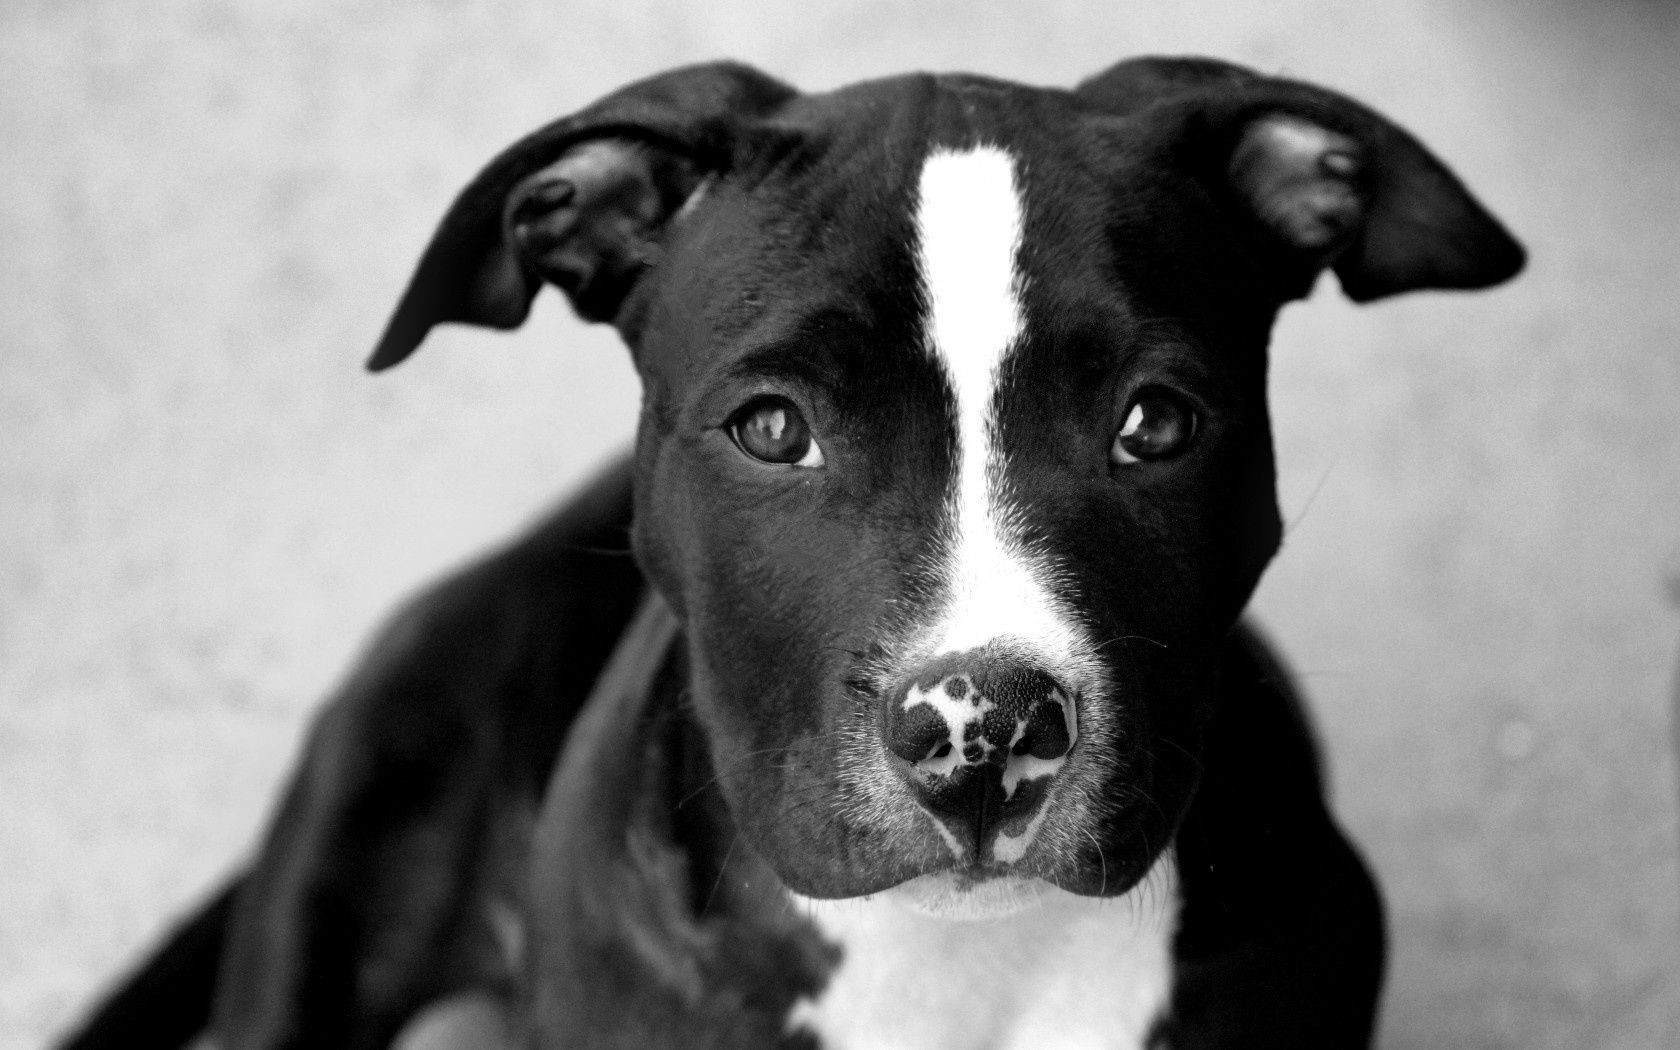 dogs dog portrait mammal canine pet animal one cute monochrome puppy terrier